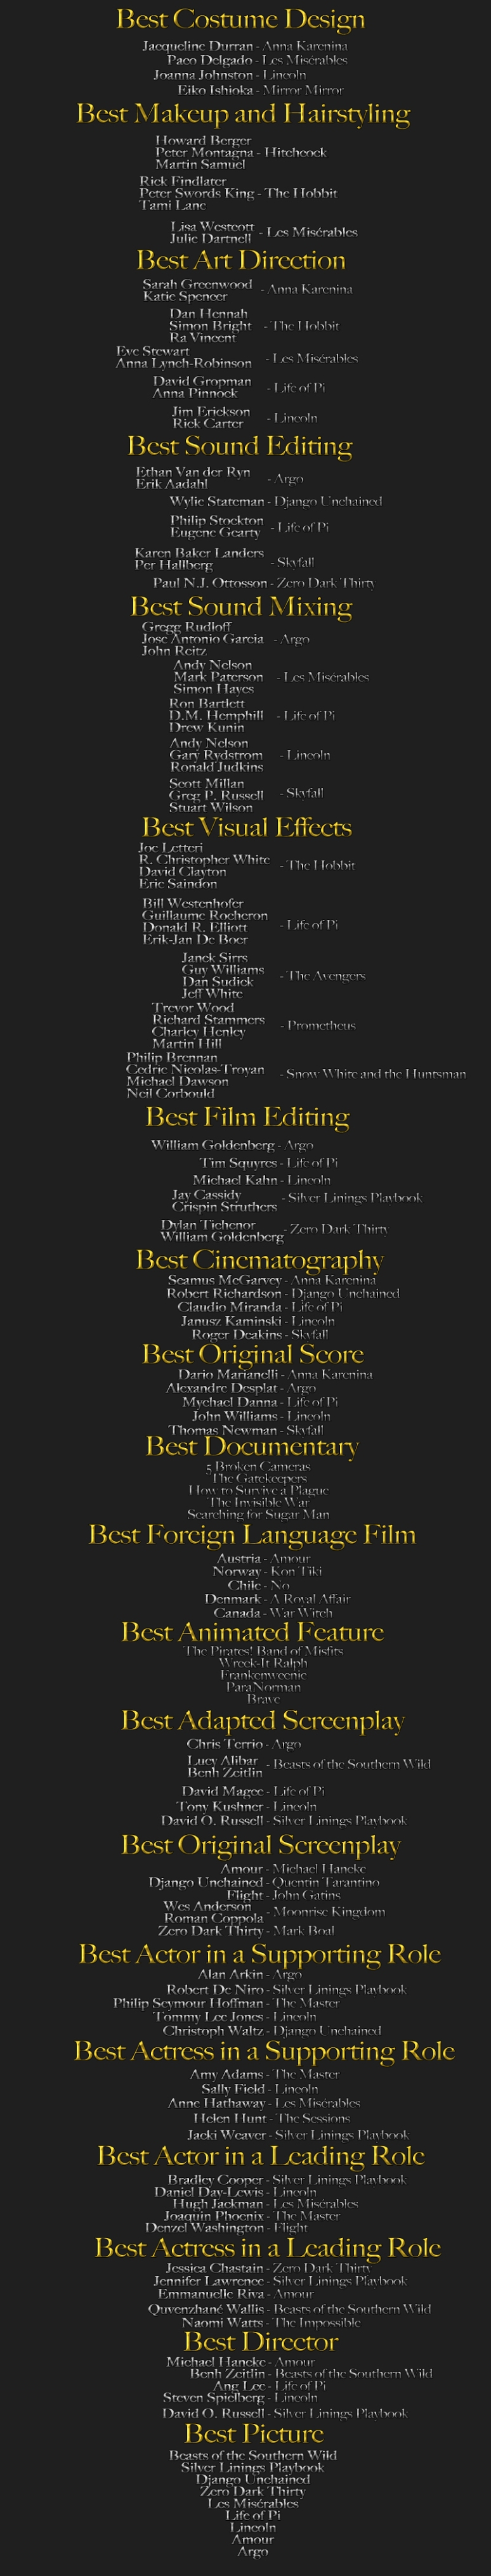 2013 Oscar Nominations